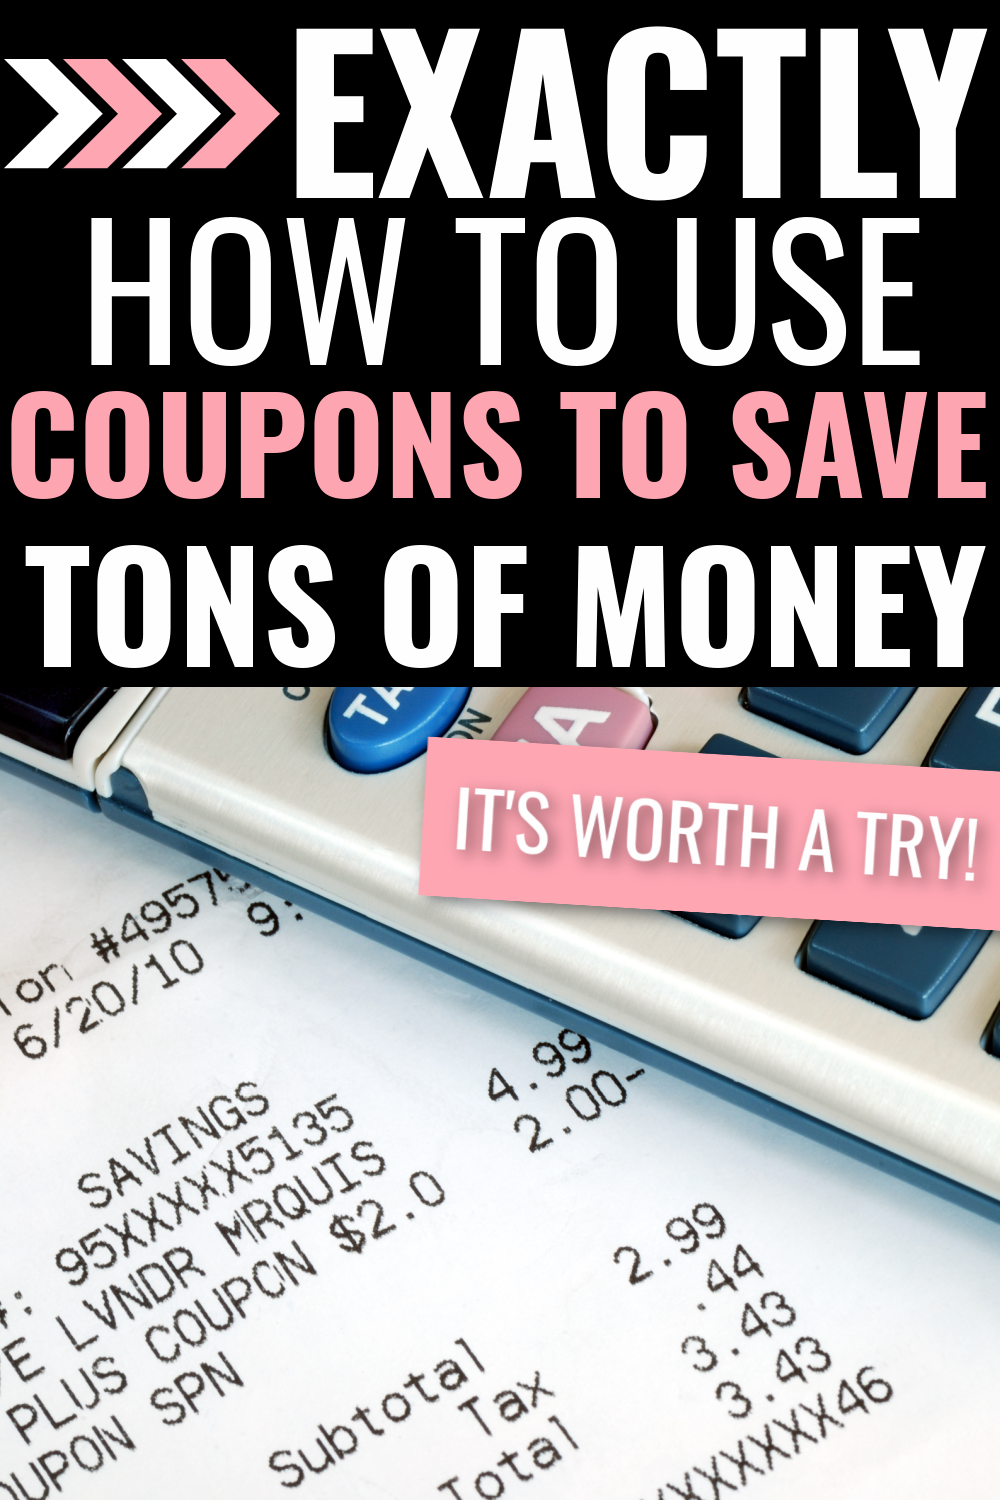 how to use coupons to save lots of money